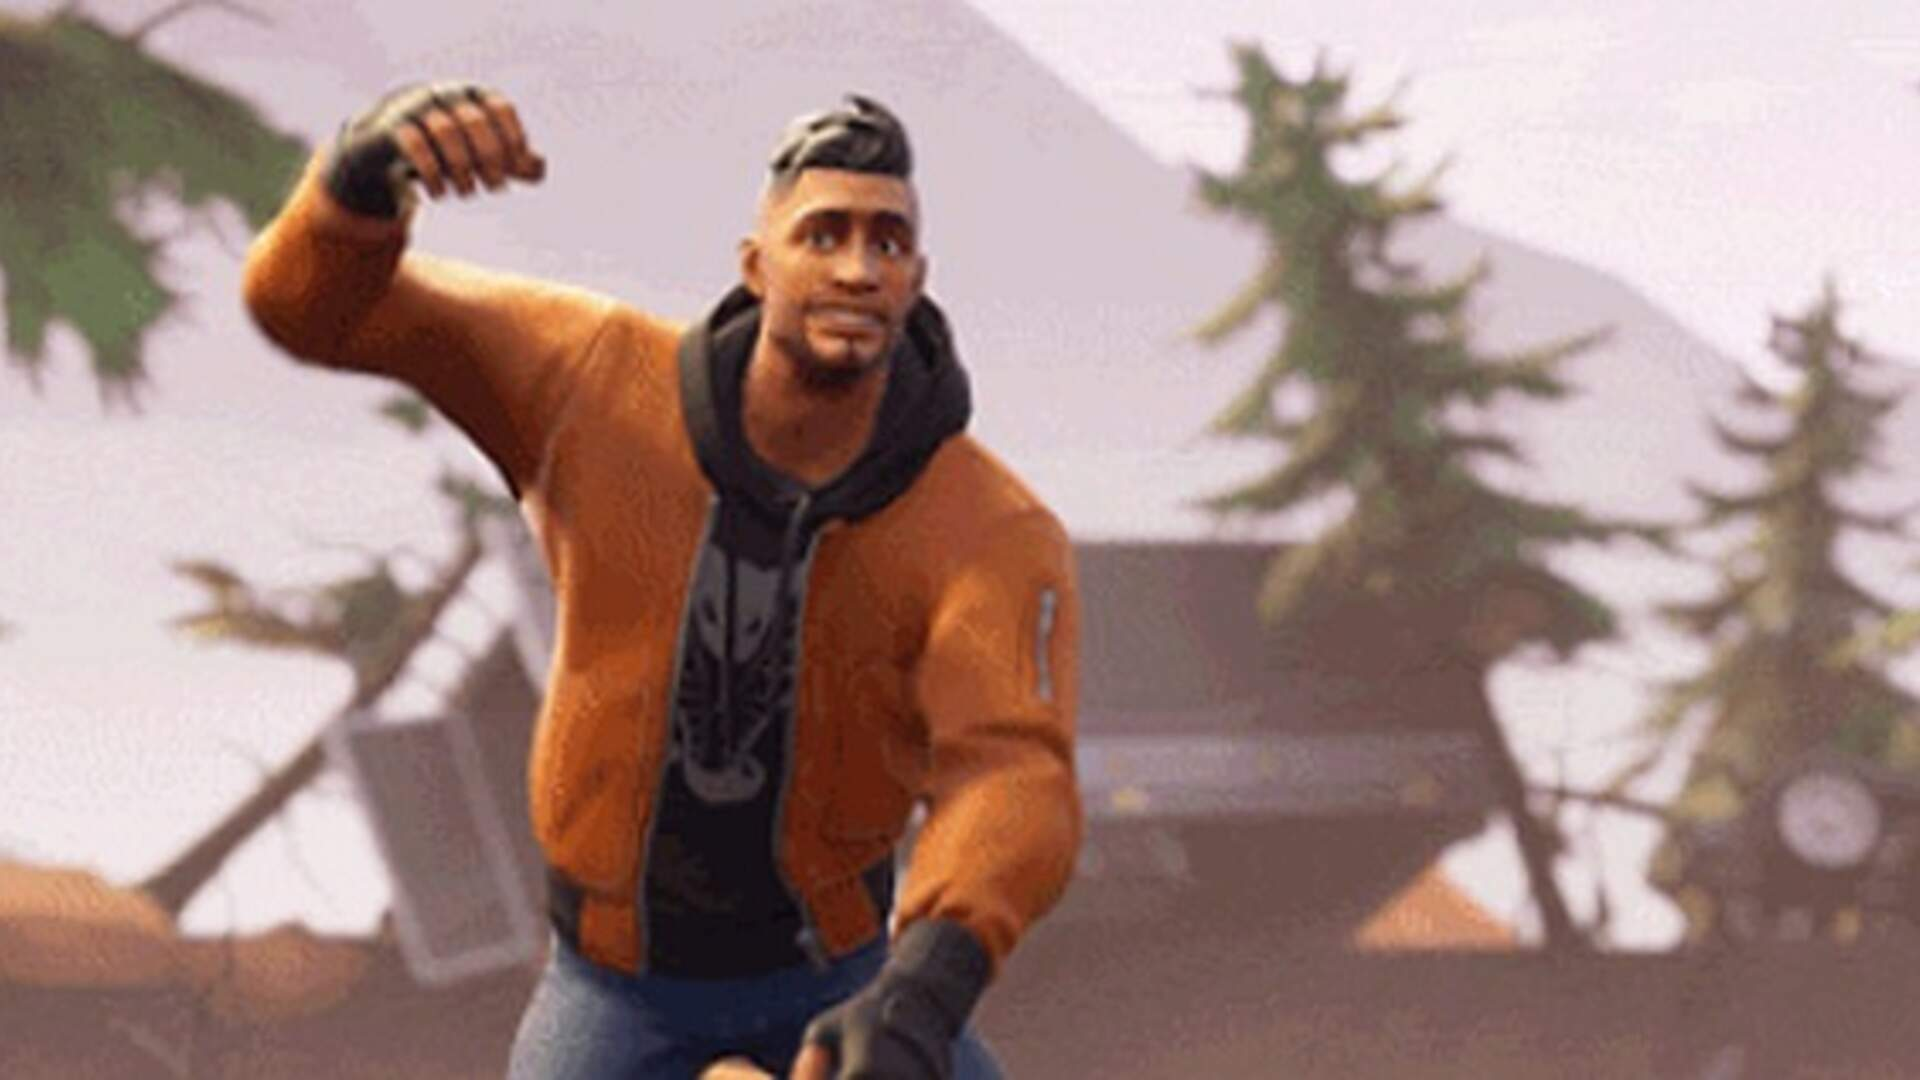 Boogie Down Is a New Free Fortnite Skin, but Only for Those Who Enable Two-Factor Authentication